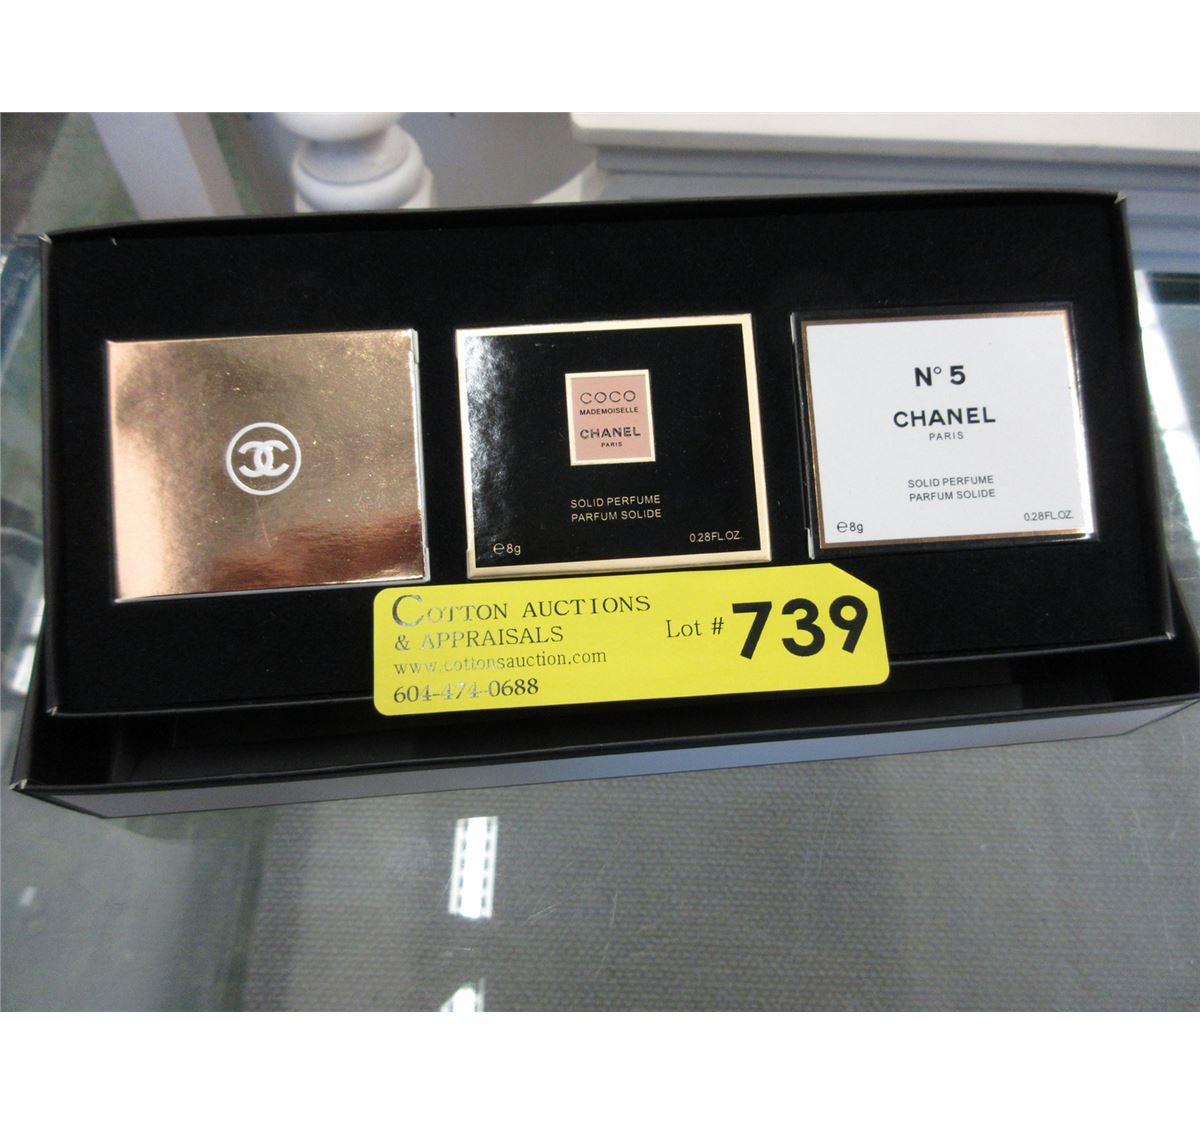 Chanel Solid Perfume Gift Set